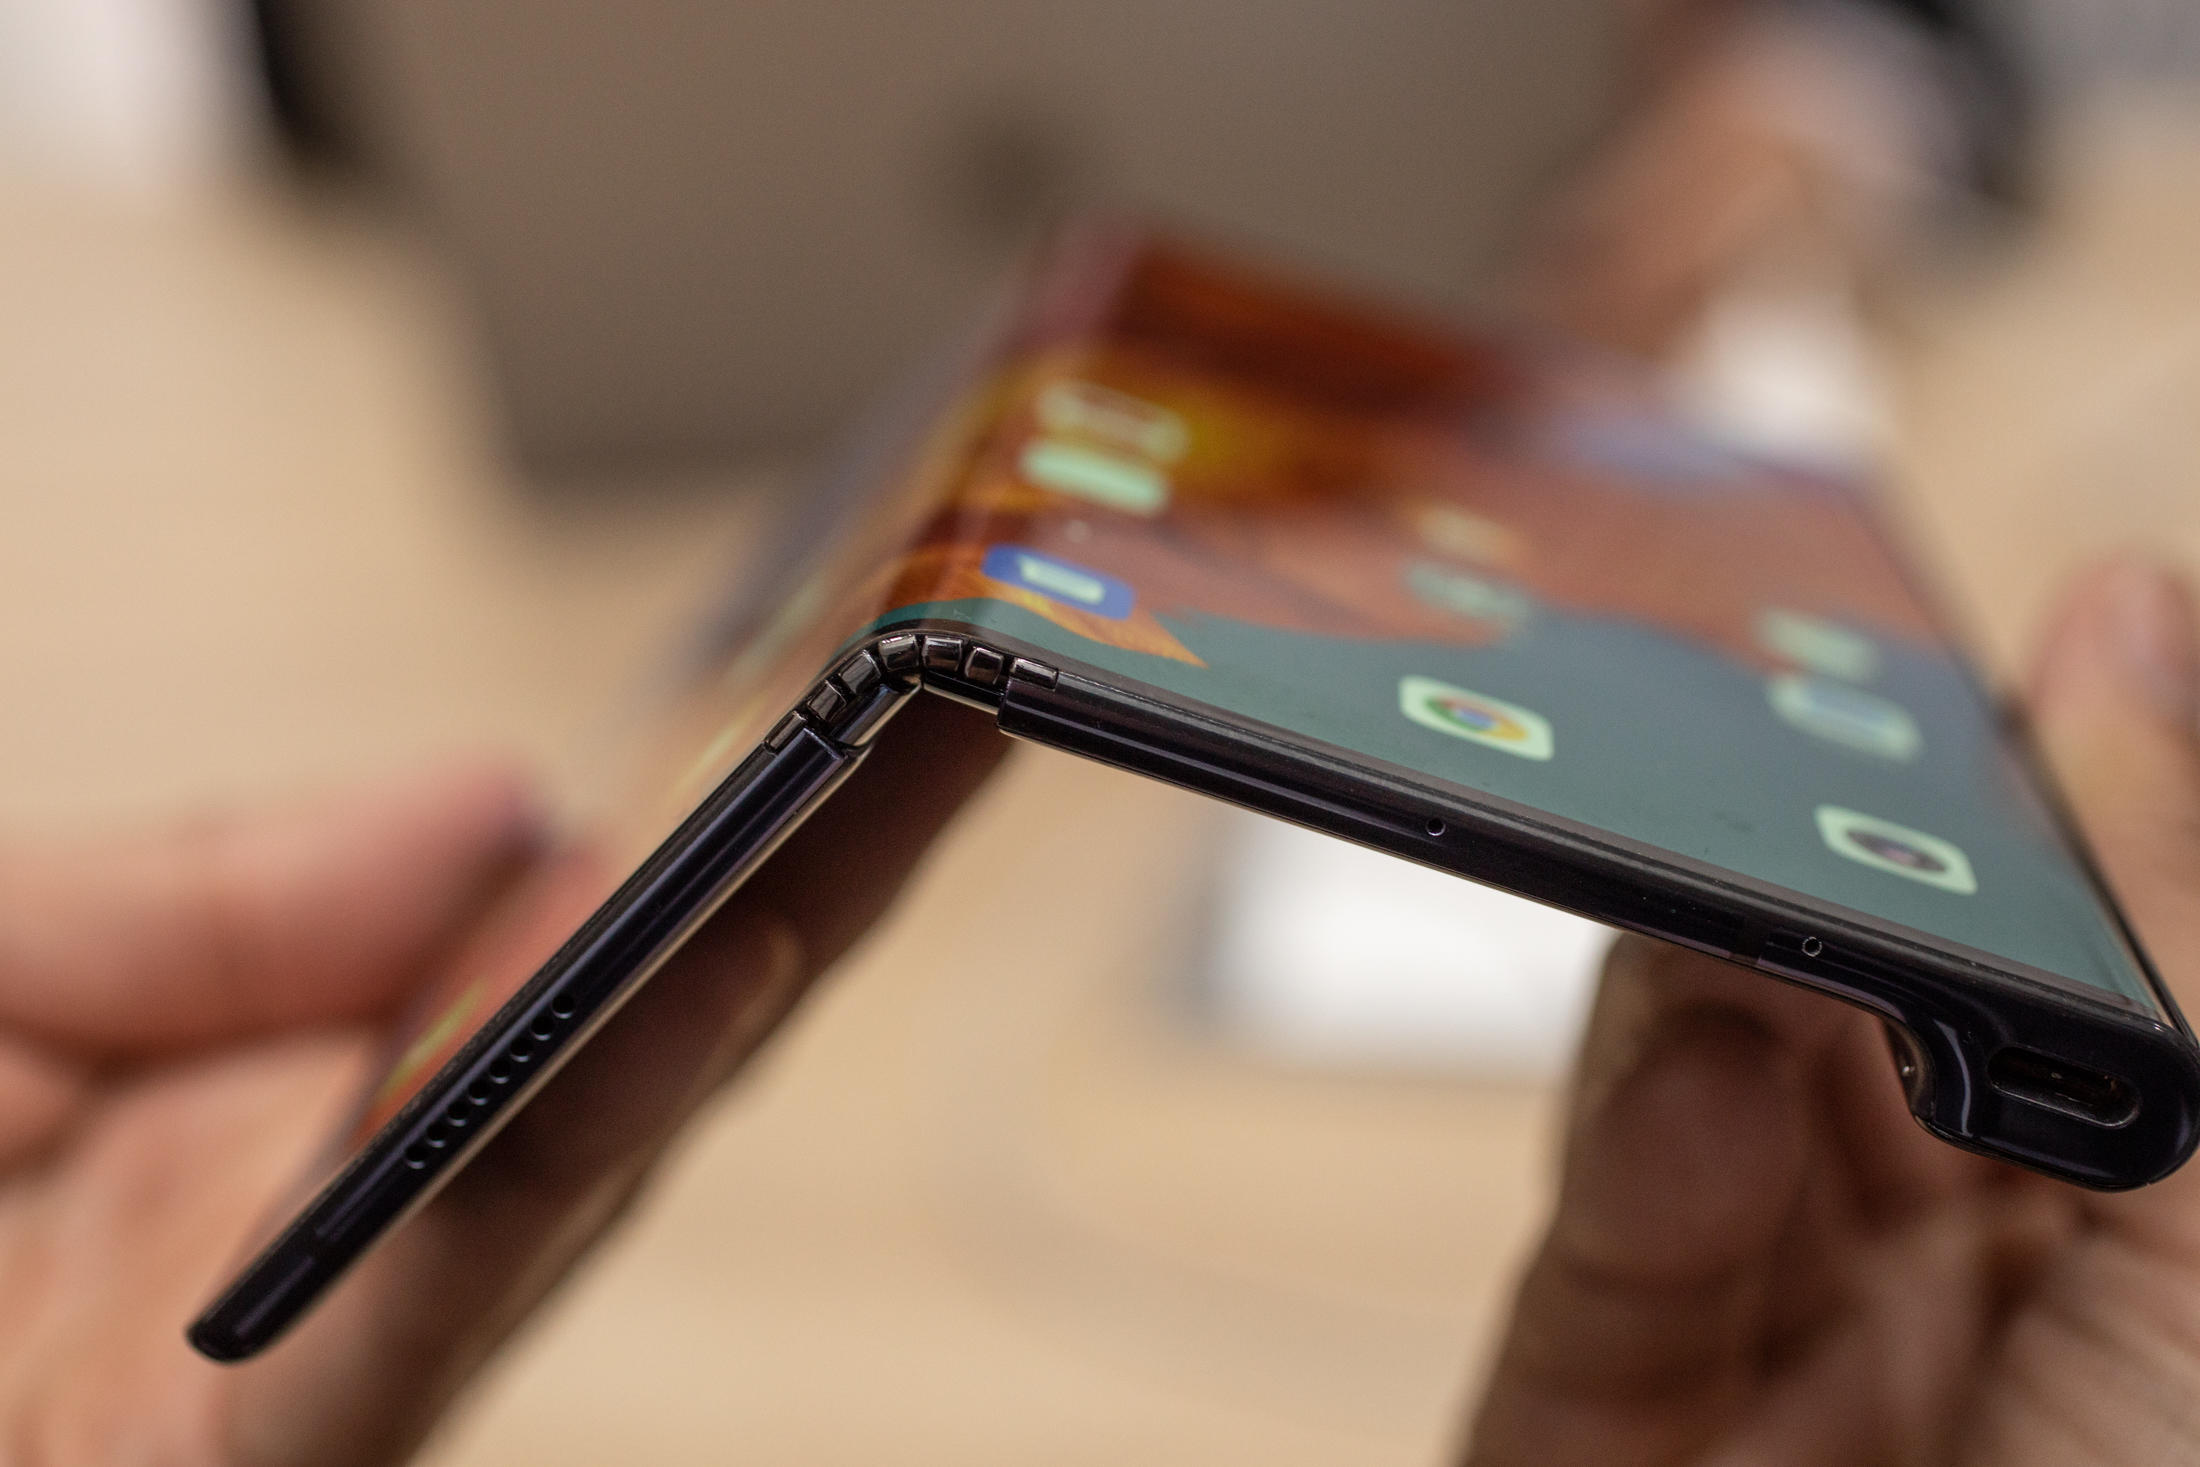 huawei-mate-x-hands-on-mwc-2019-15